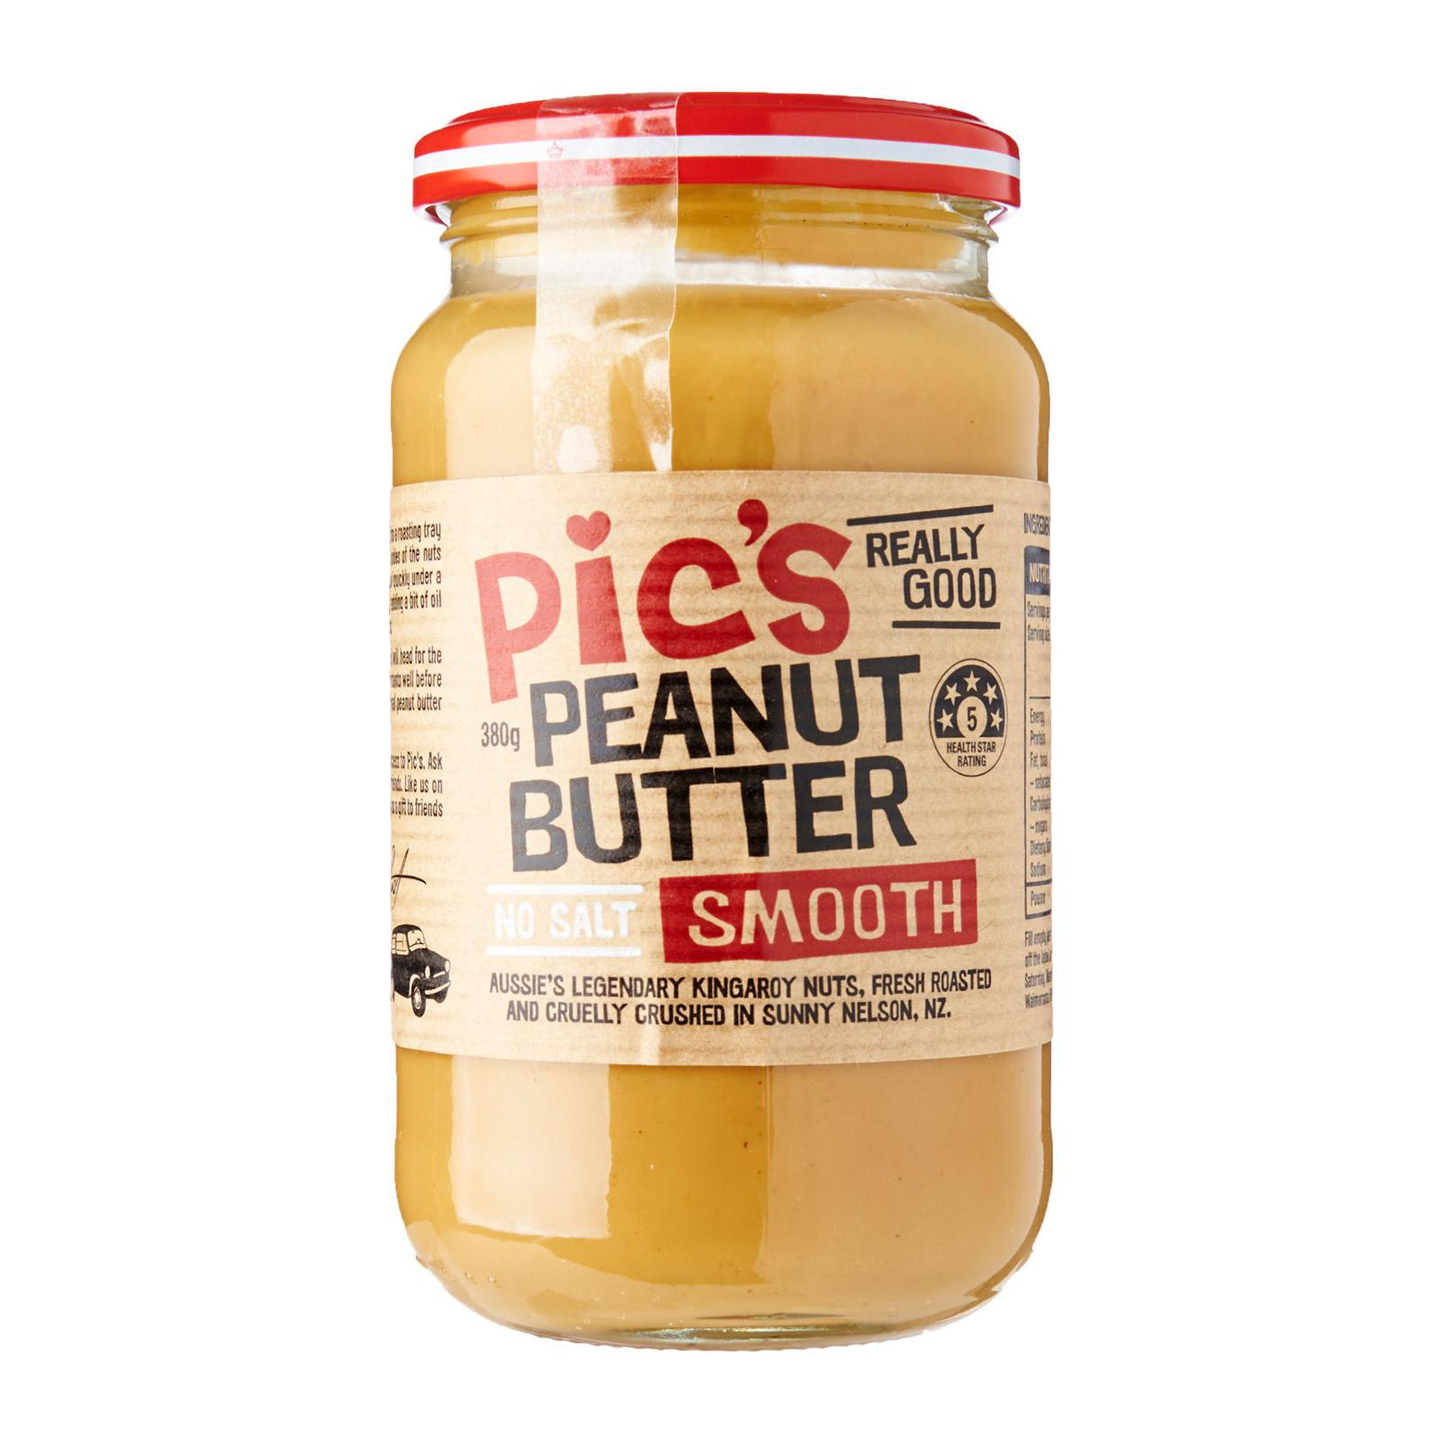 Pics Peanut Butter Smooth No Salt 380g